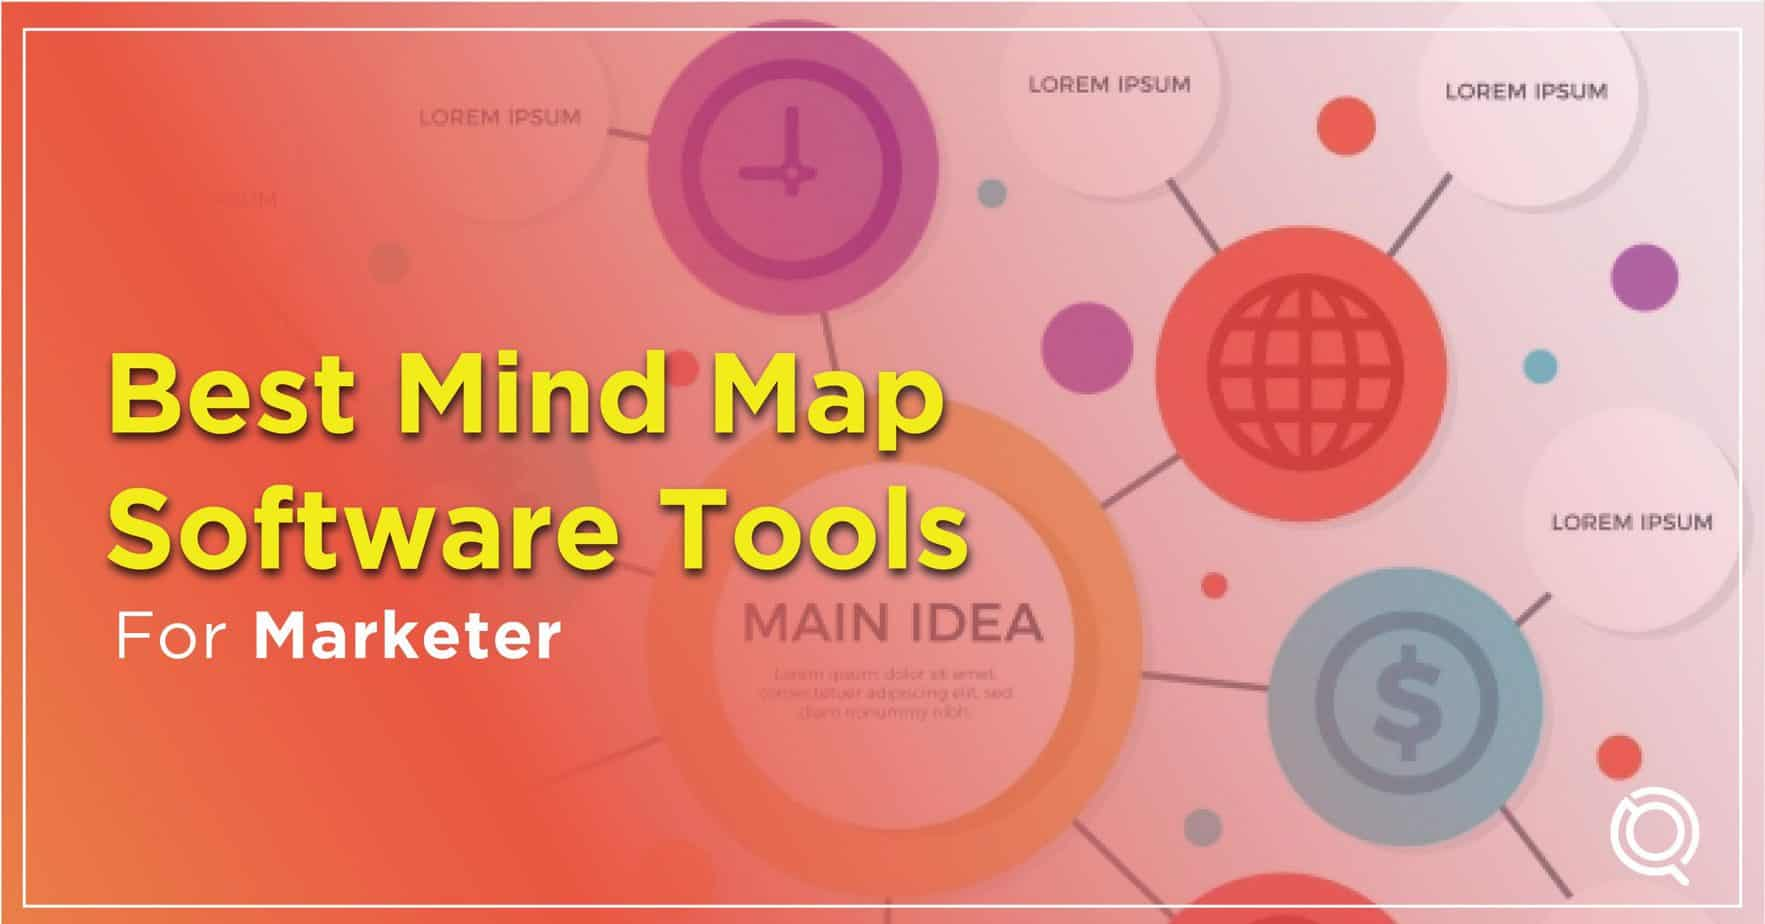 Best Mind Mapping Tools To Improve Your Marketing Game - One Search Pro Best Digital Marketing Agency